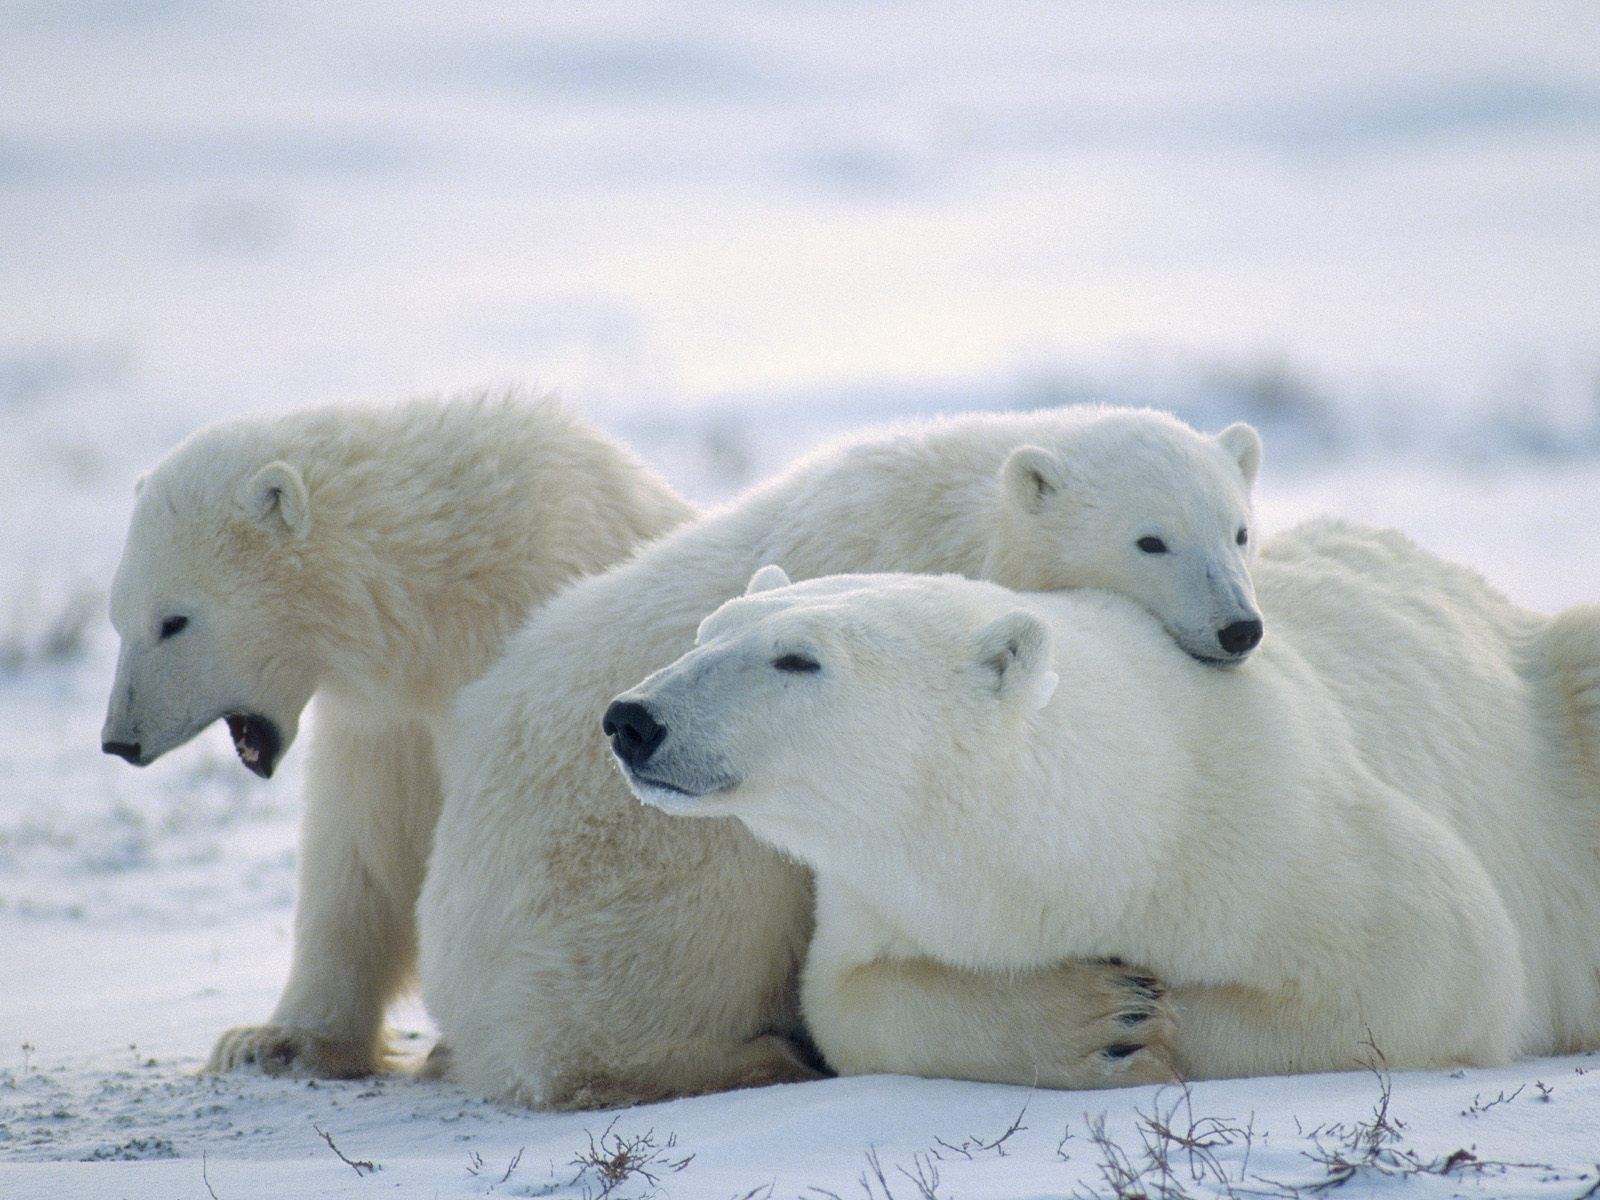 http://2.bp.blogspot.com/-uMdzAcEGAeY/UQ9E20qmfOI/AAAAAAAAAeo/-UW87eKk2xw/s1600/polar-bear-and-cubs-hd-wallpaper.jpg